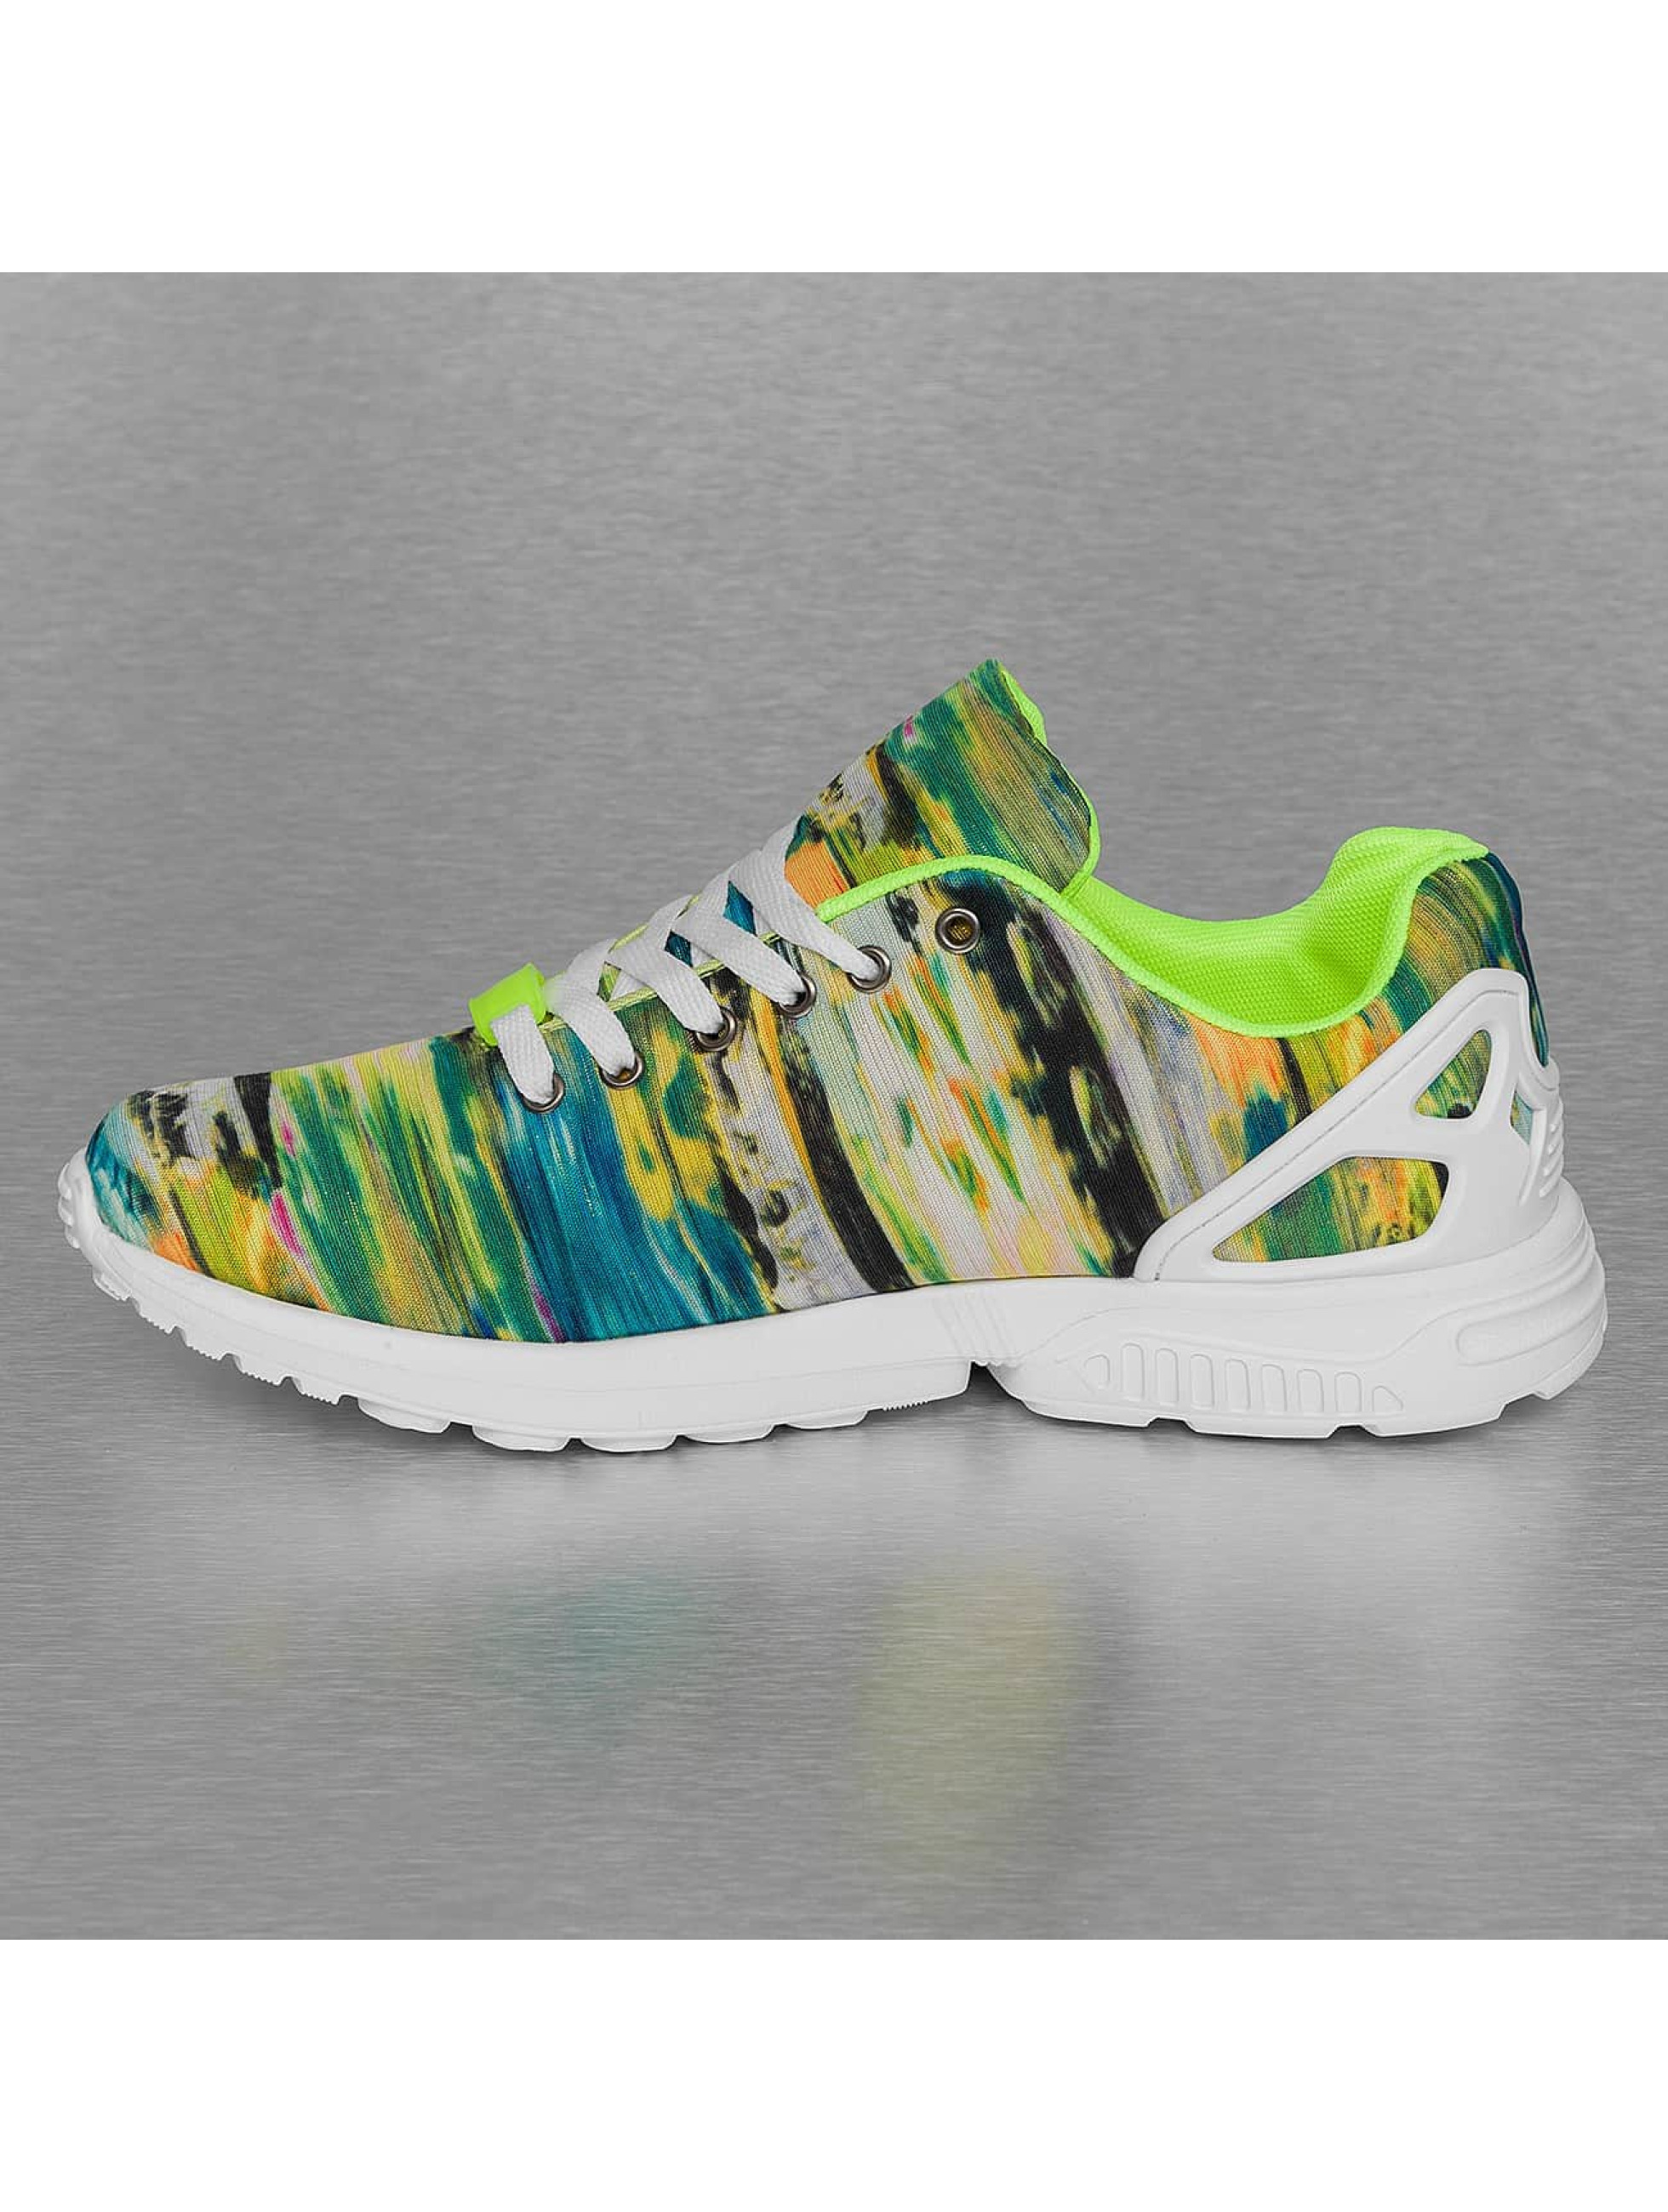 New York Style Sneakers Low Top colored